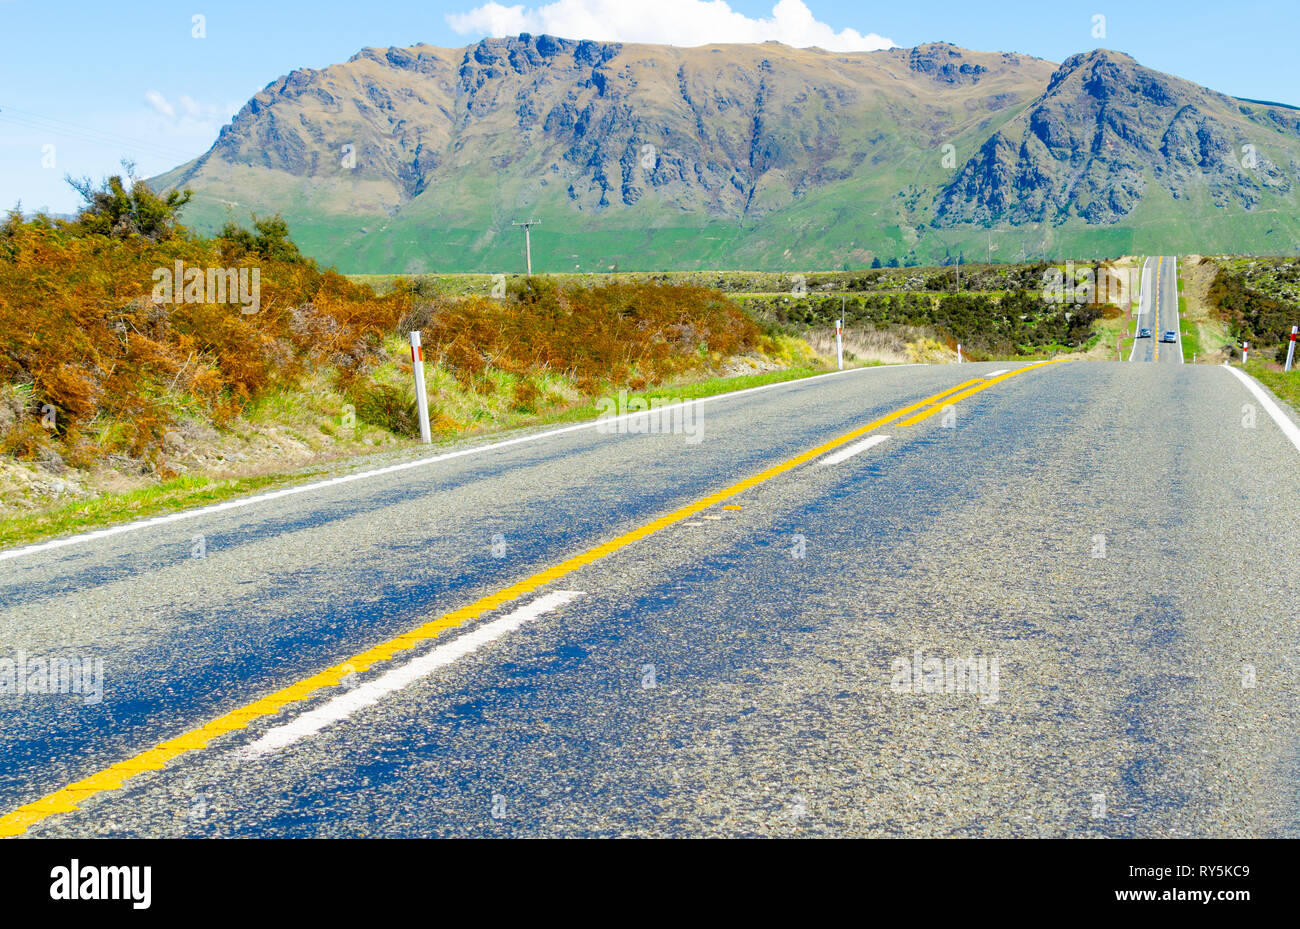 South Island highway with yellow no over-taking line. - Stock Image